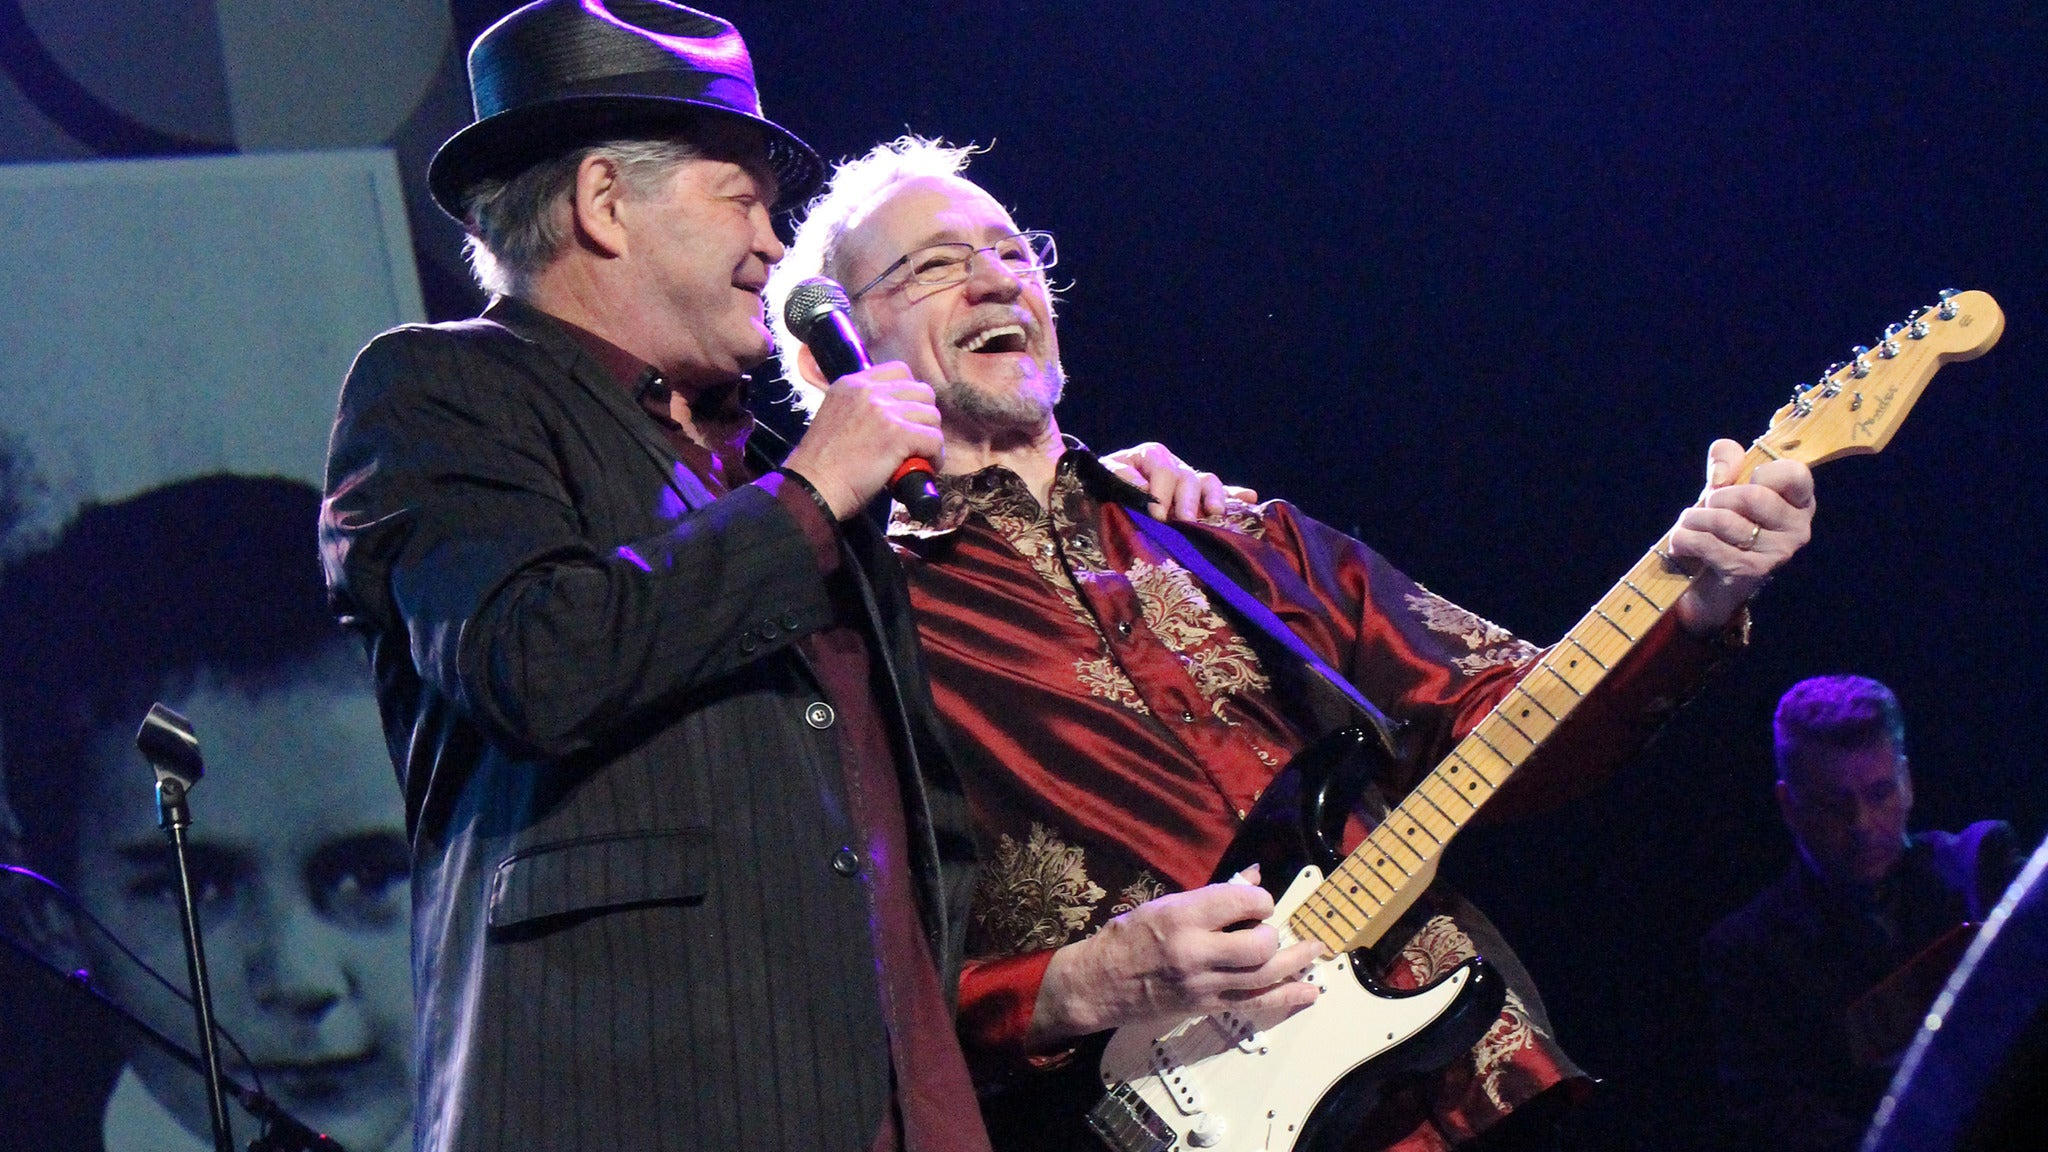 The Monkees present The Mike & Micky Show